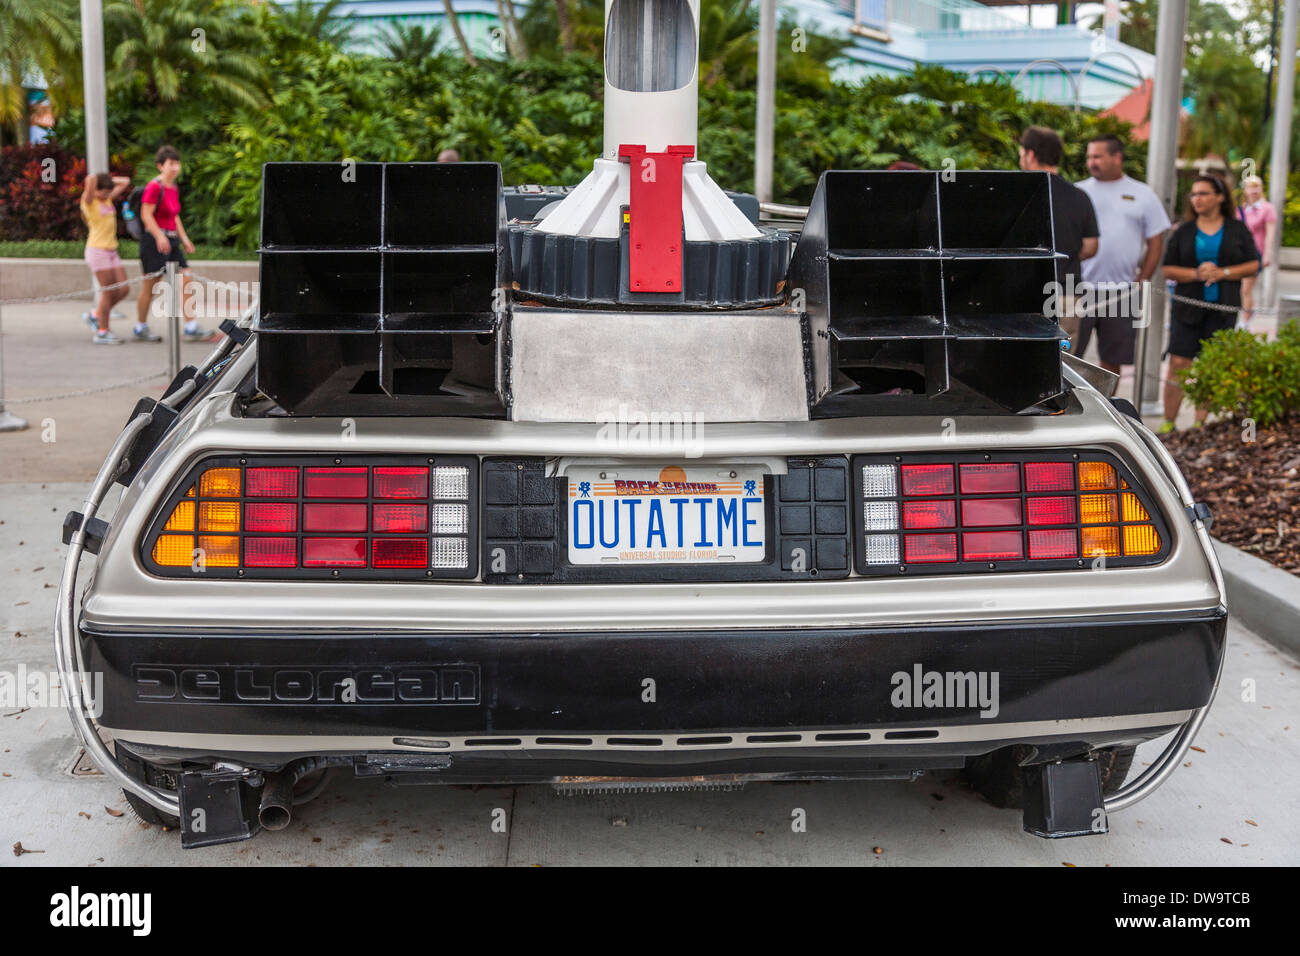 License Plate On Car From Back To The Future Movies Reads